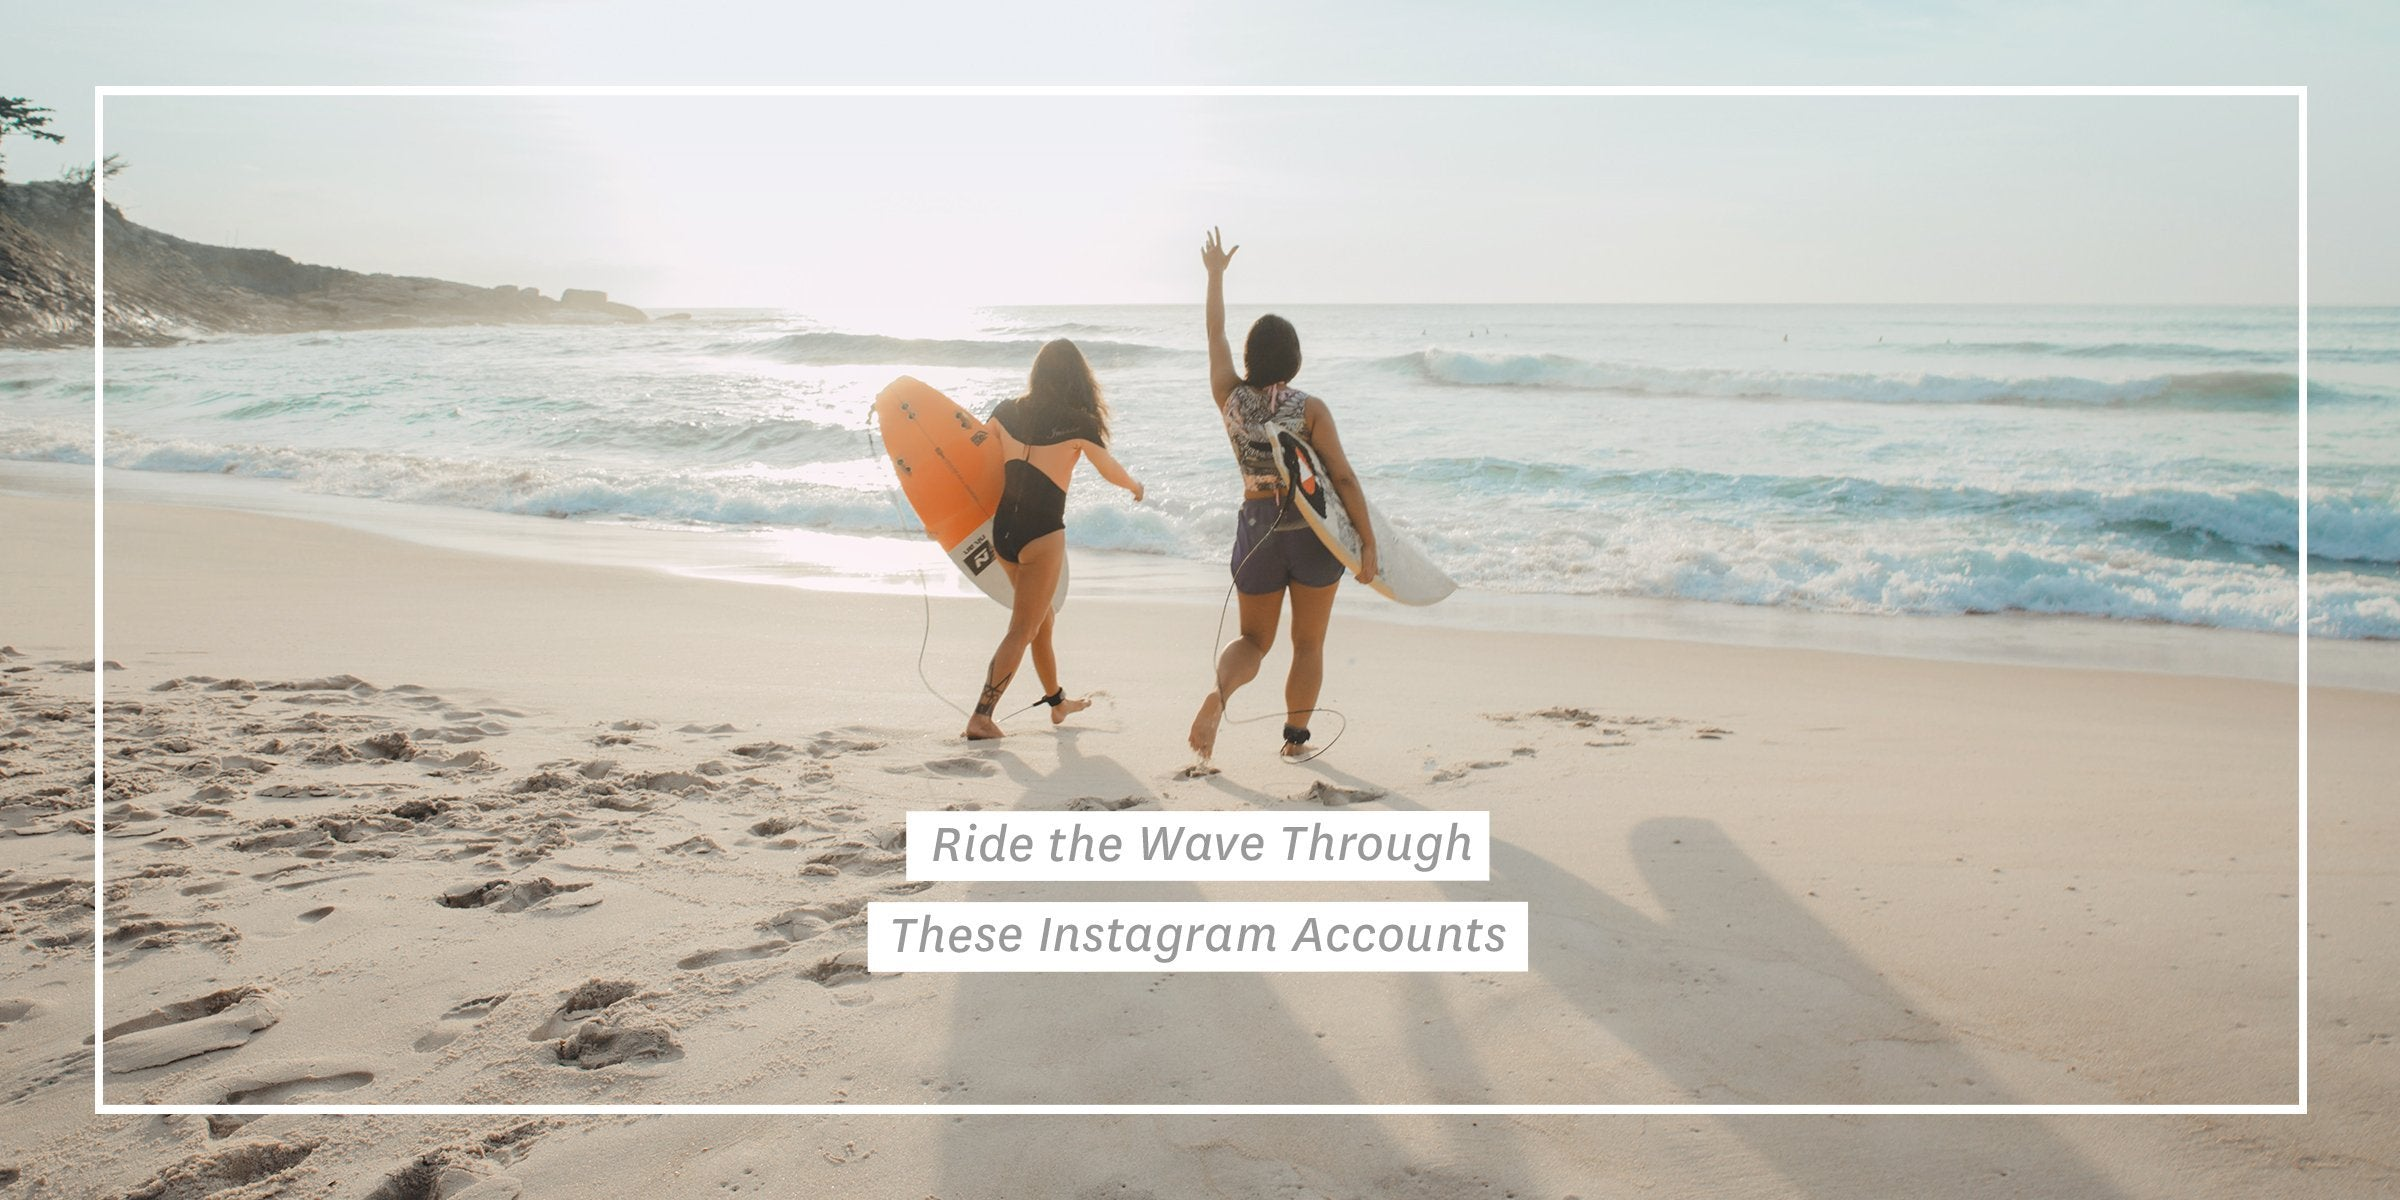 Ride the Wave Through These Instagram Accounts